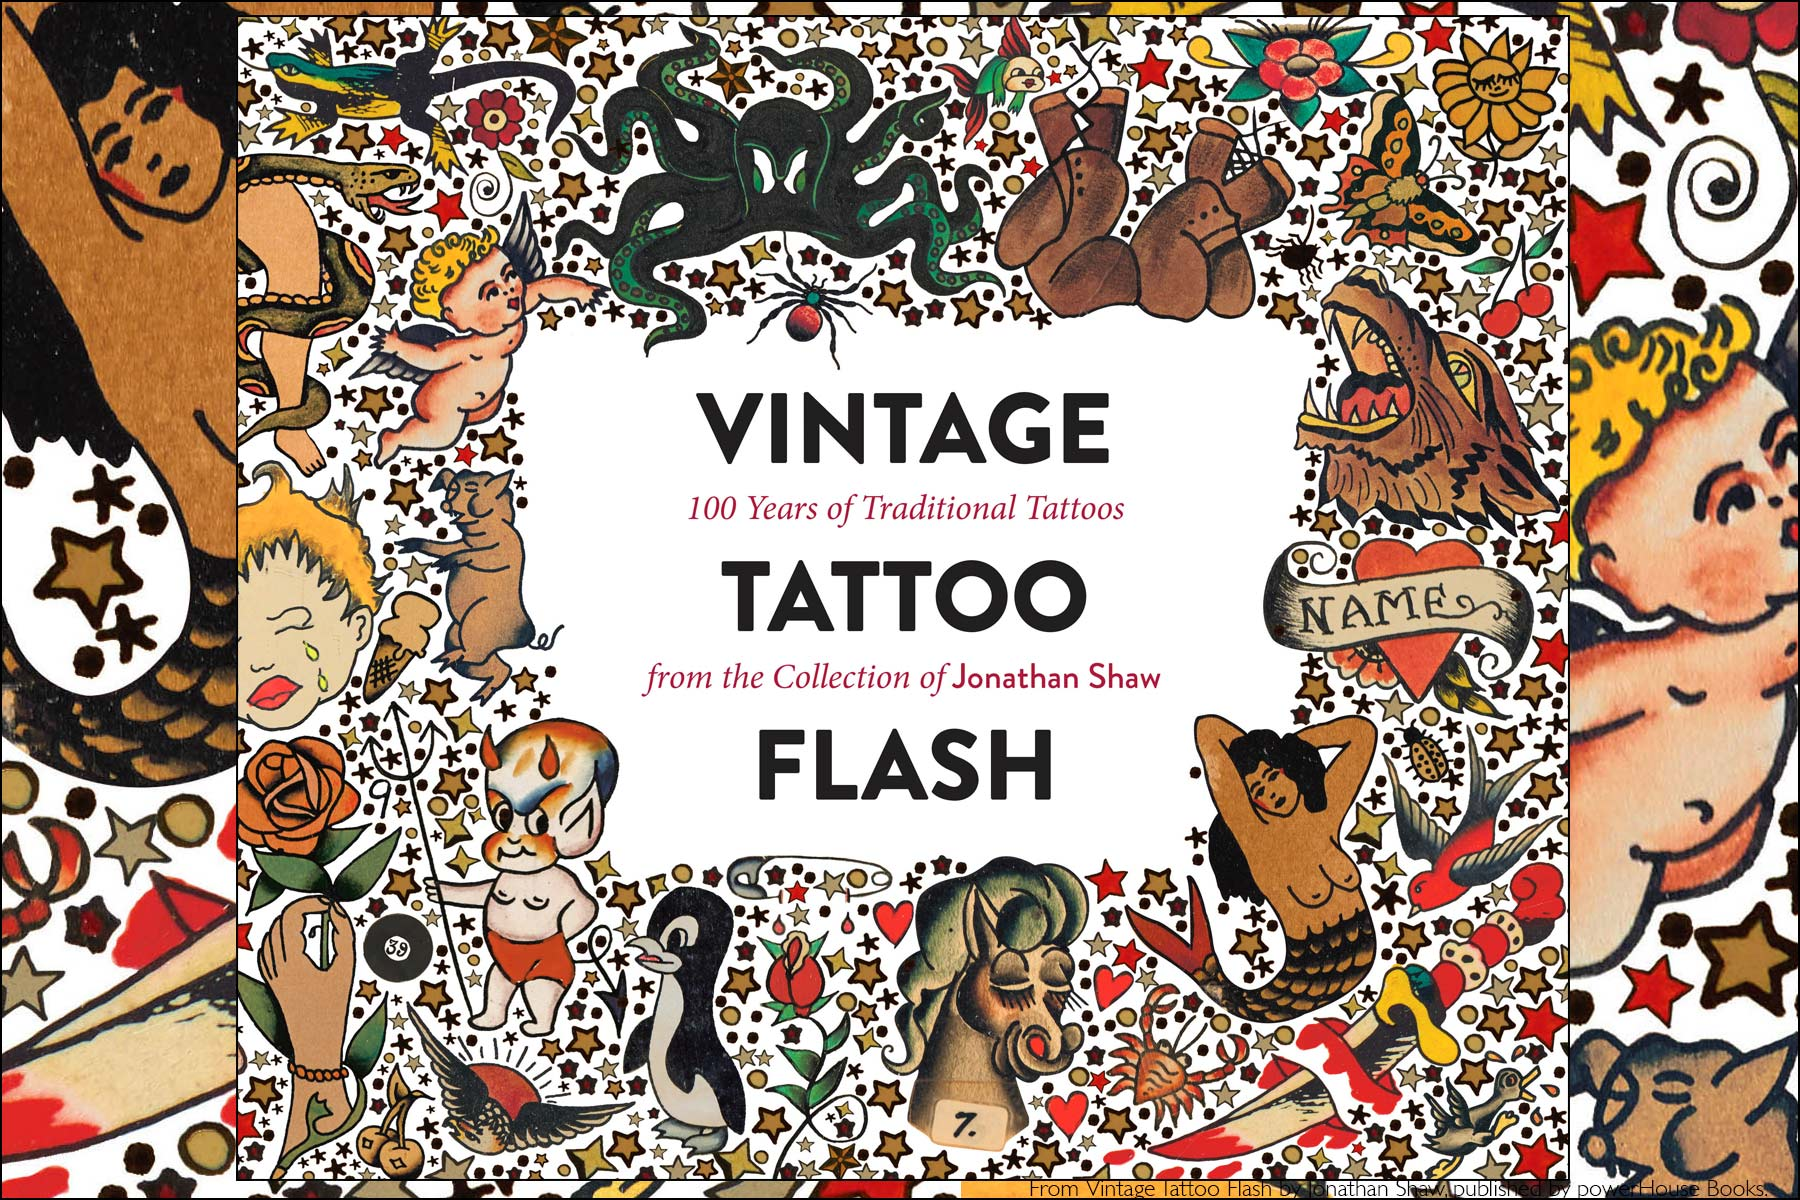 Vintage Tattoo Flash by Jonathan Shaw, published by Powerhouse Books. Ponyboy magazine NY.